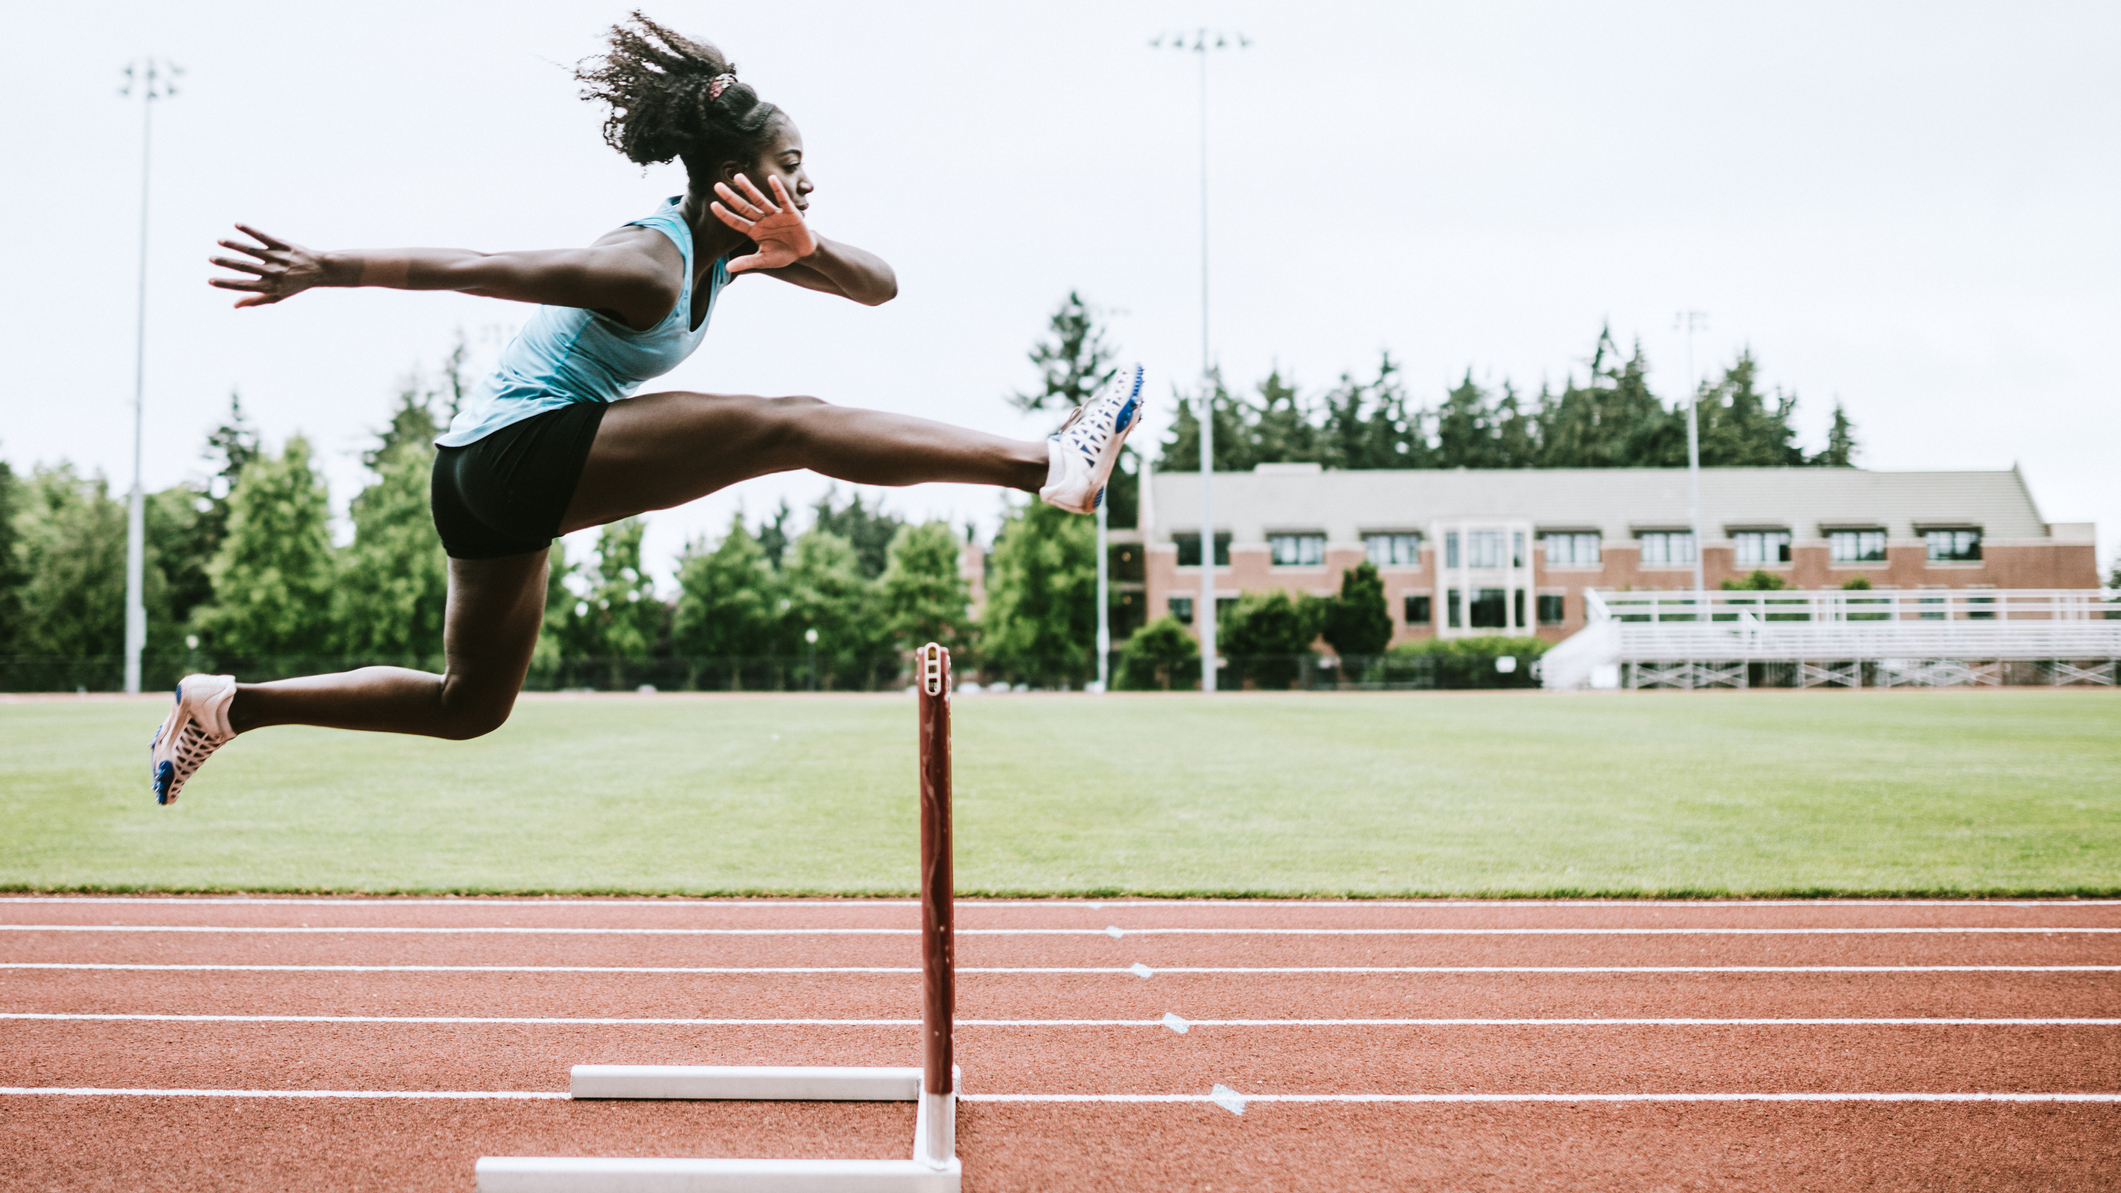 A athlete jumps a hurdle